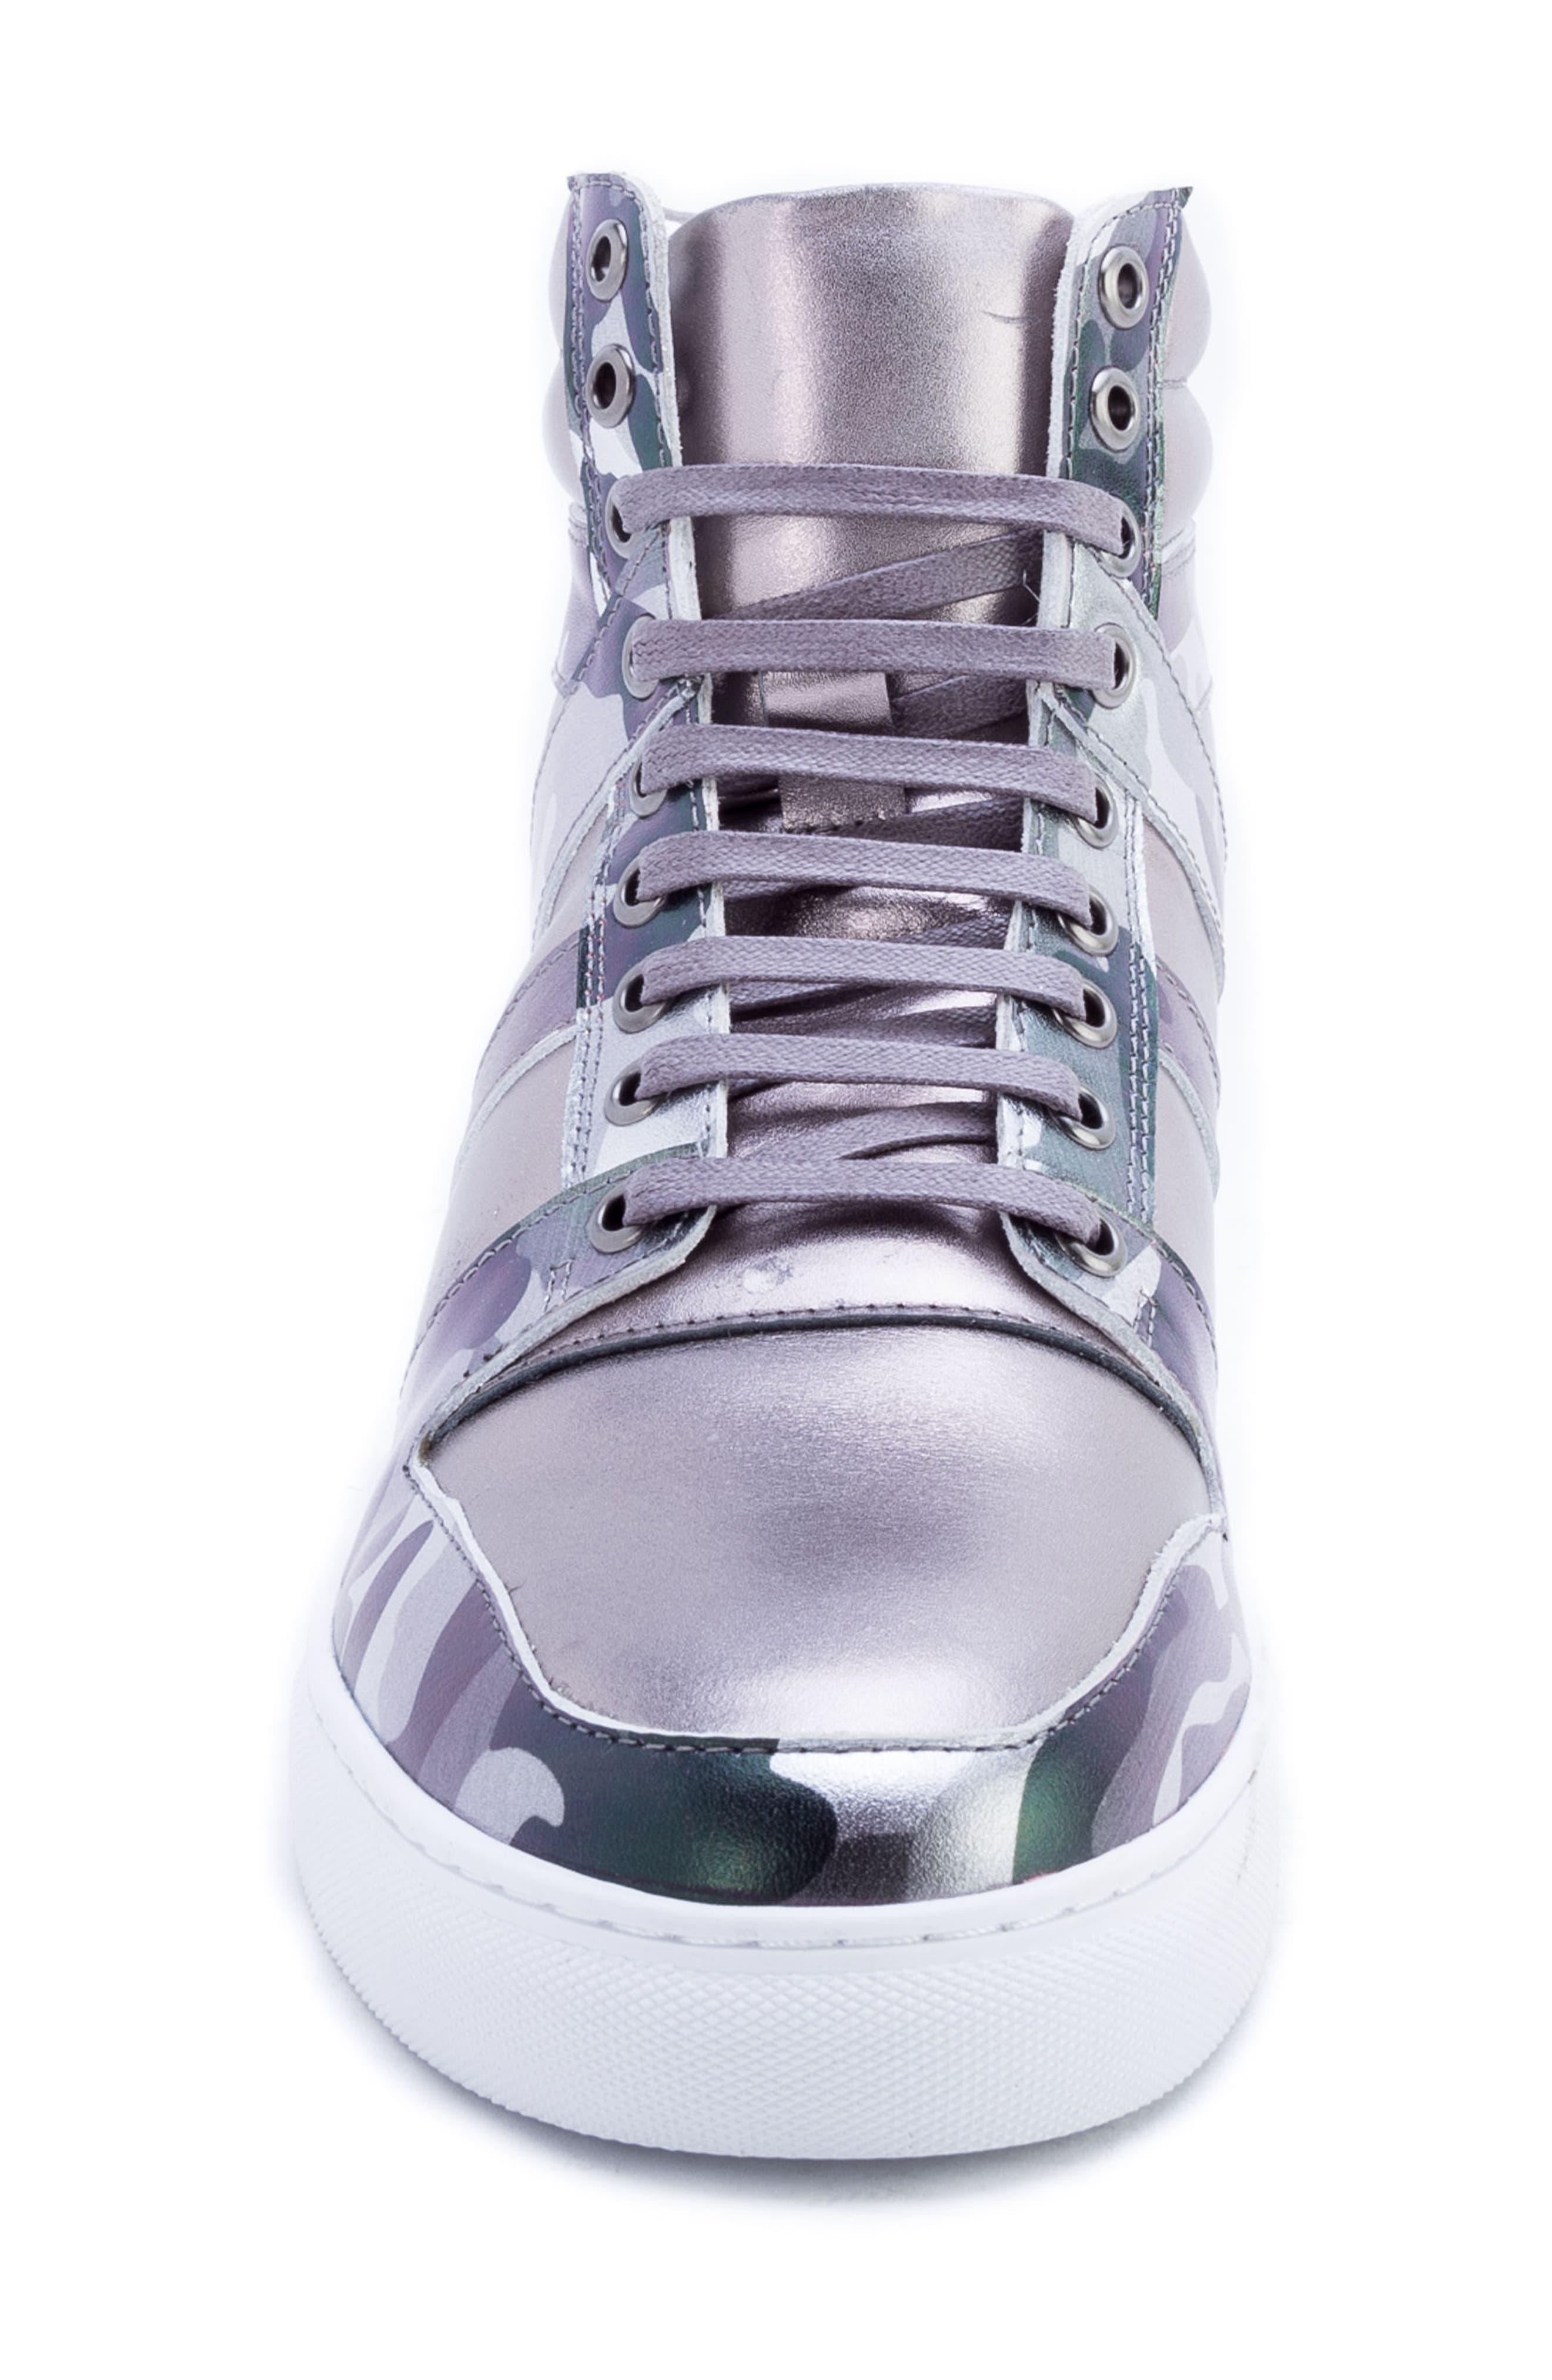 Badgley Mischka Sutherland Sneaker,                             Alternate thumbnail 4, color,                             GREY LEATHER